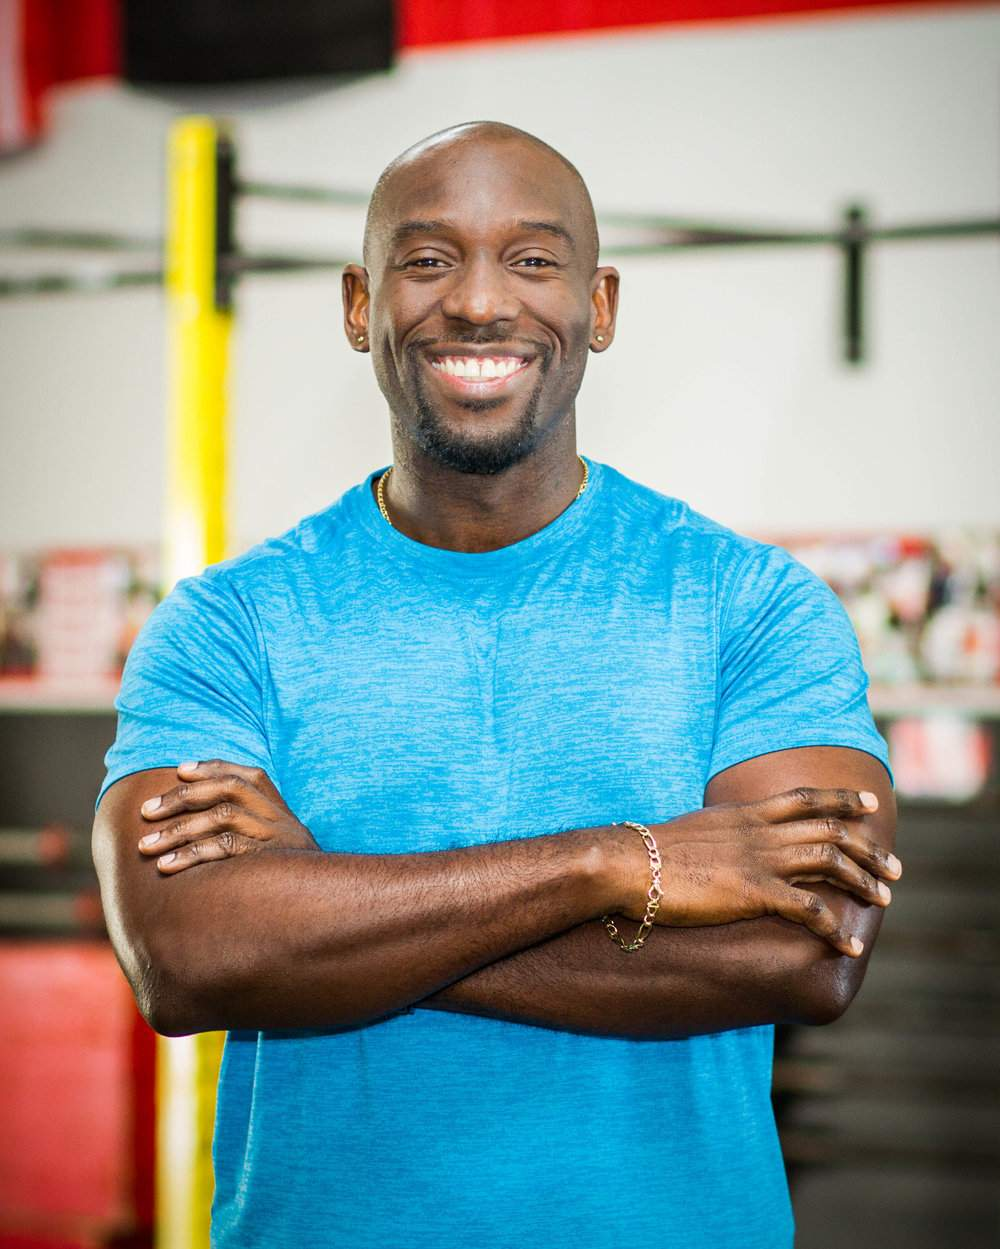 Your Trainer - Hello and welcome! My name is Kevin Parris and I'm a Personal Trainer based in Long Beach, CA.I started my career in fitness 11 years ago and I haven't looked back since. While I have always been athletic and have enjoyed challenging myself physically - Being afforded the opportunity to share that passion with you, is where my true motivation lies.If you're ready to take the first step toward living a healthier lifestyle, you've come to the right place! While we all seek the physical fruits of our labor - what you gain mentally from meeting goals you've set and surpassing your own expectations can not only change your mindset but your outlook on life.